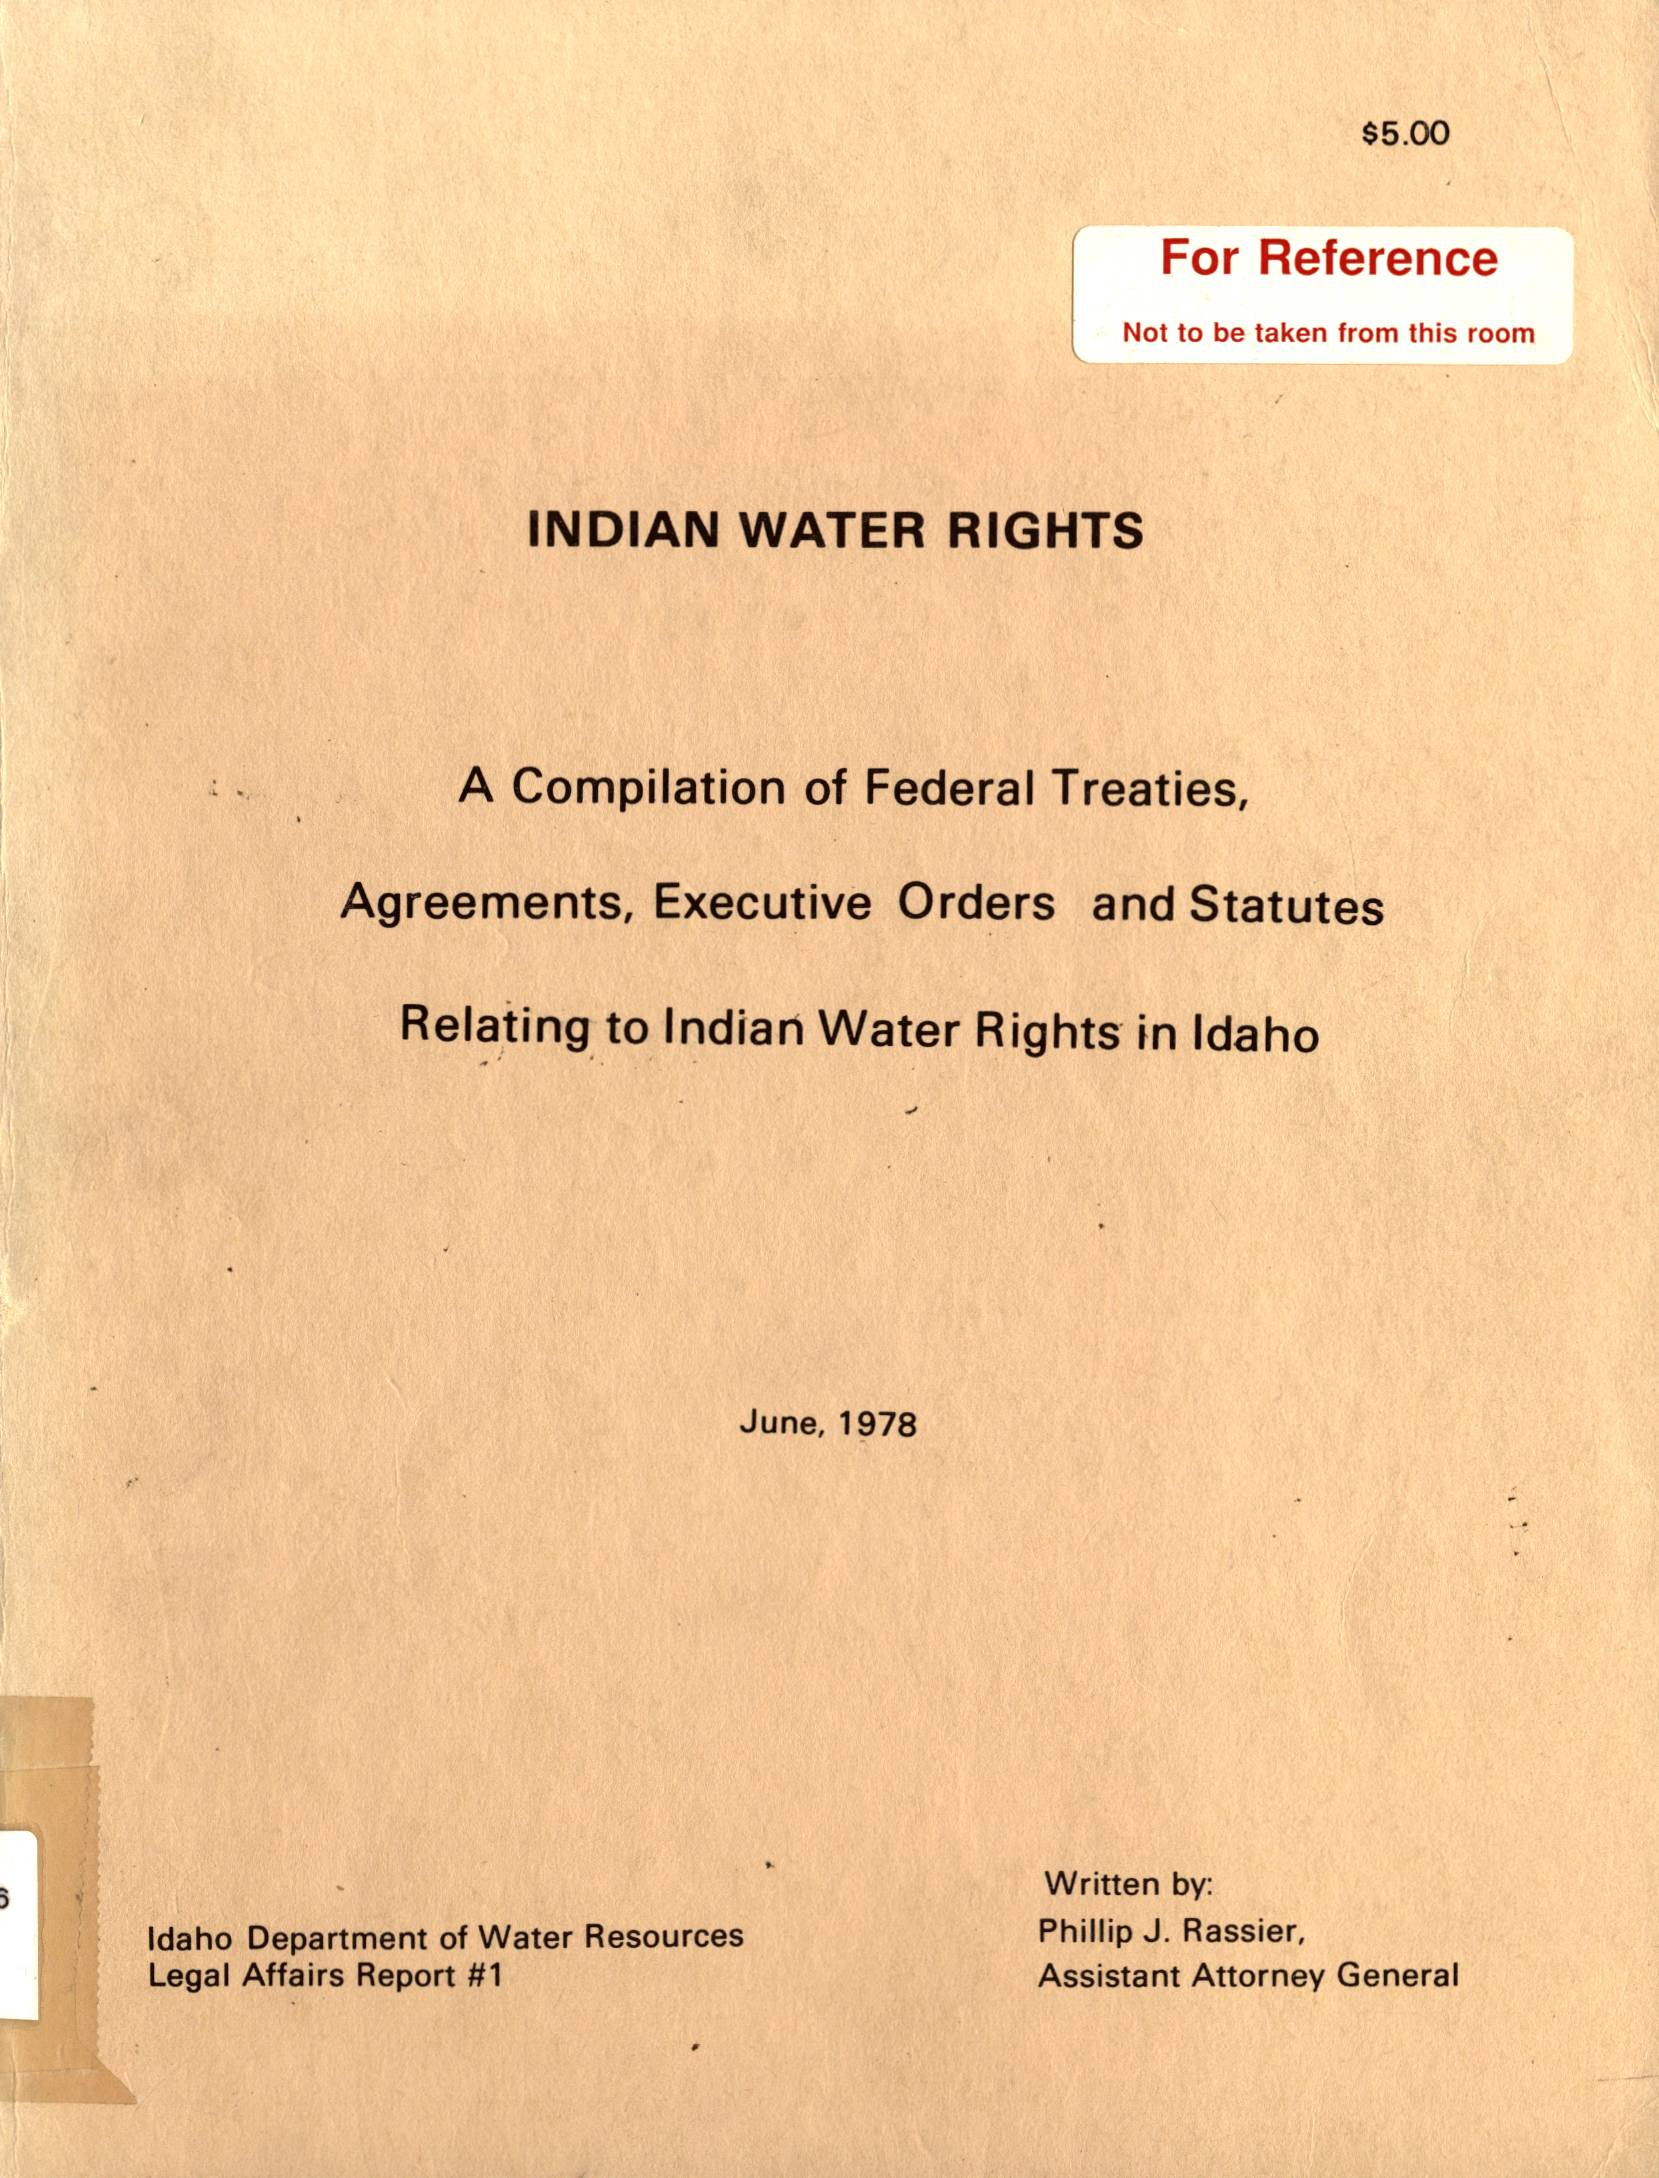 Indian Water Rights: a compilation of federal treaties, agreements, executive orders, and statutes relating to Indian water rights in Idaho